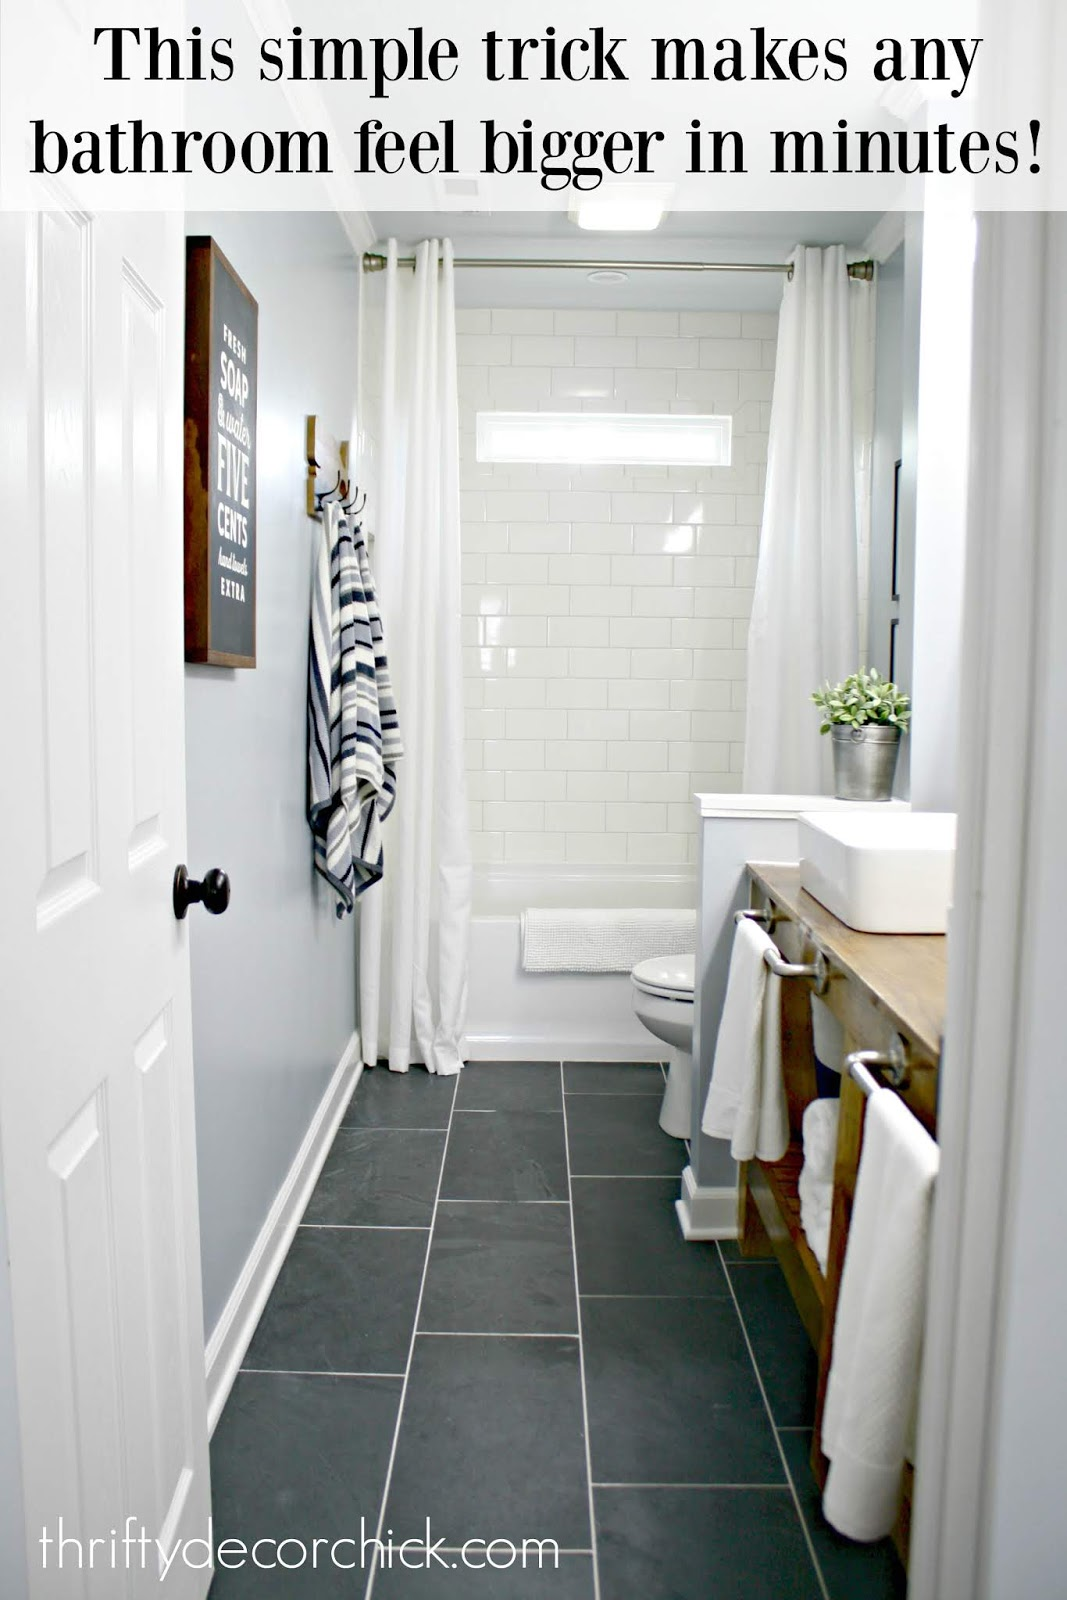 Raise shower curtain to make bathroom feel bigger